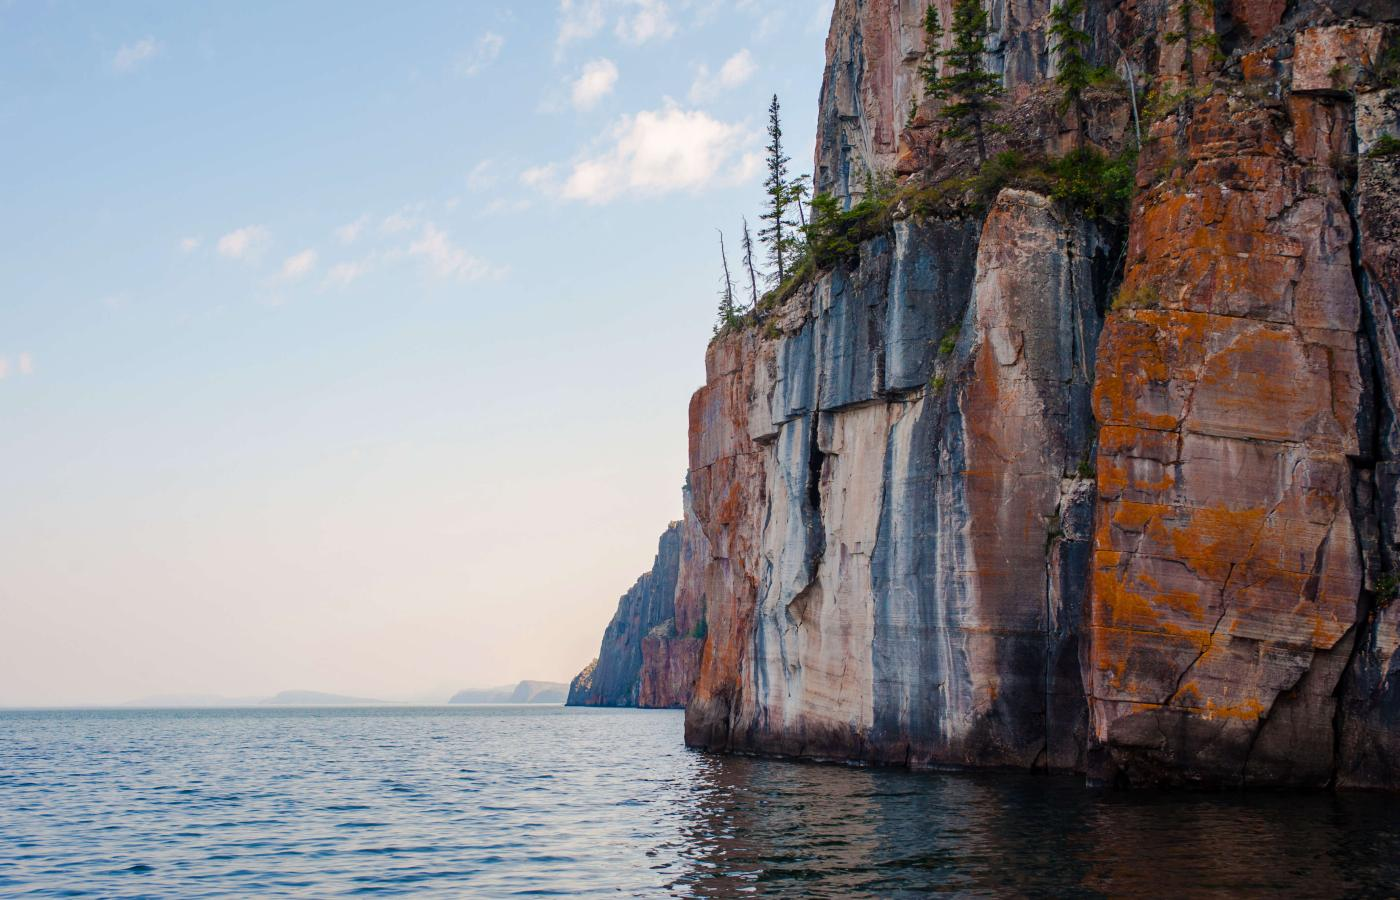 Red cliffs of the East Arm in Great Slave Lake